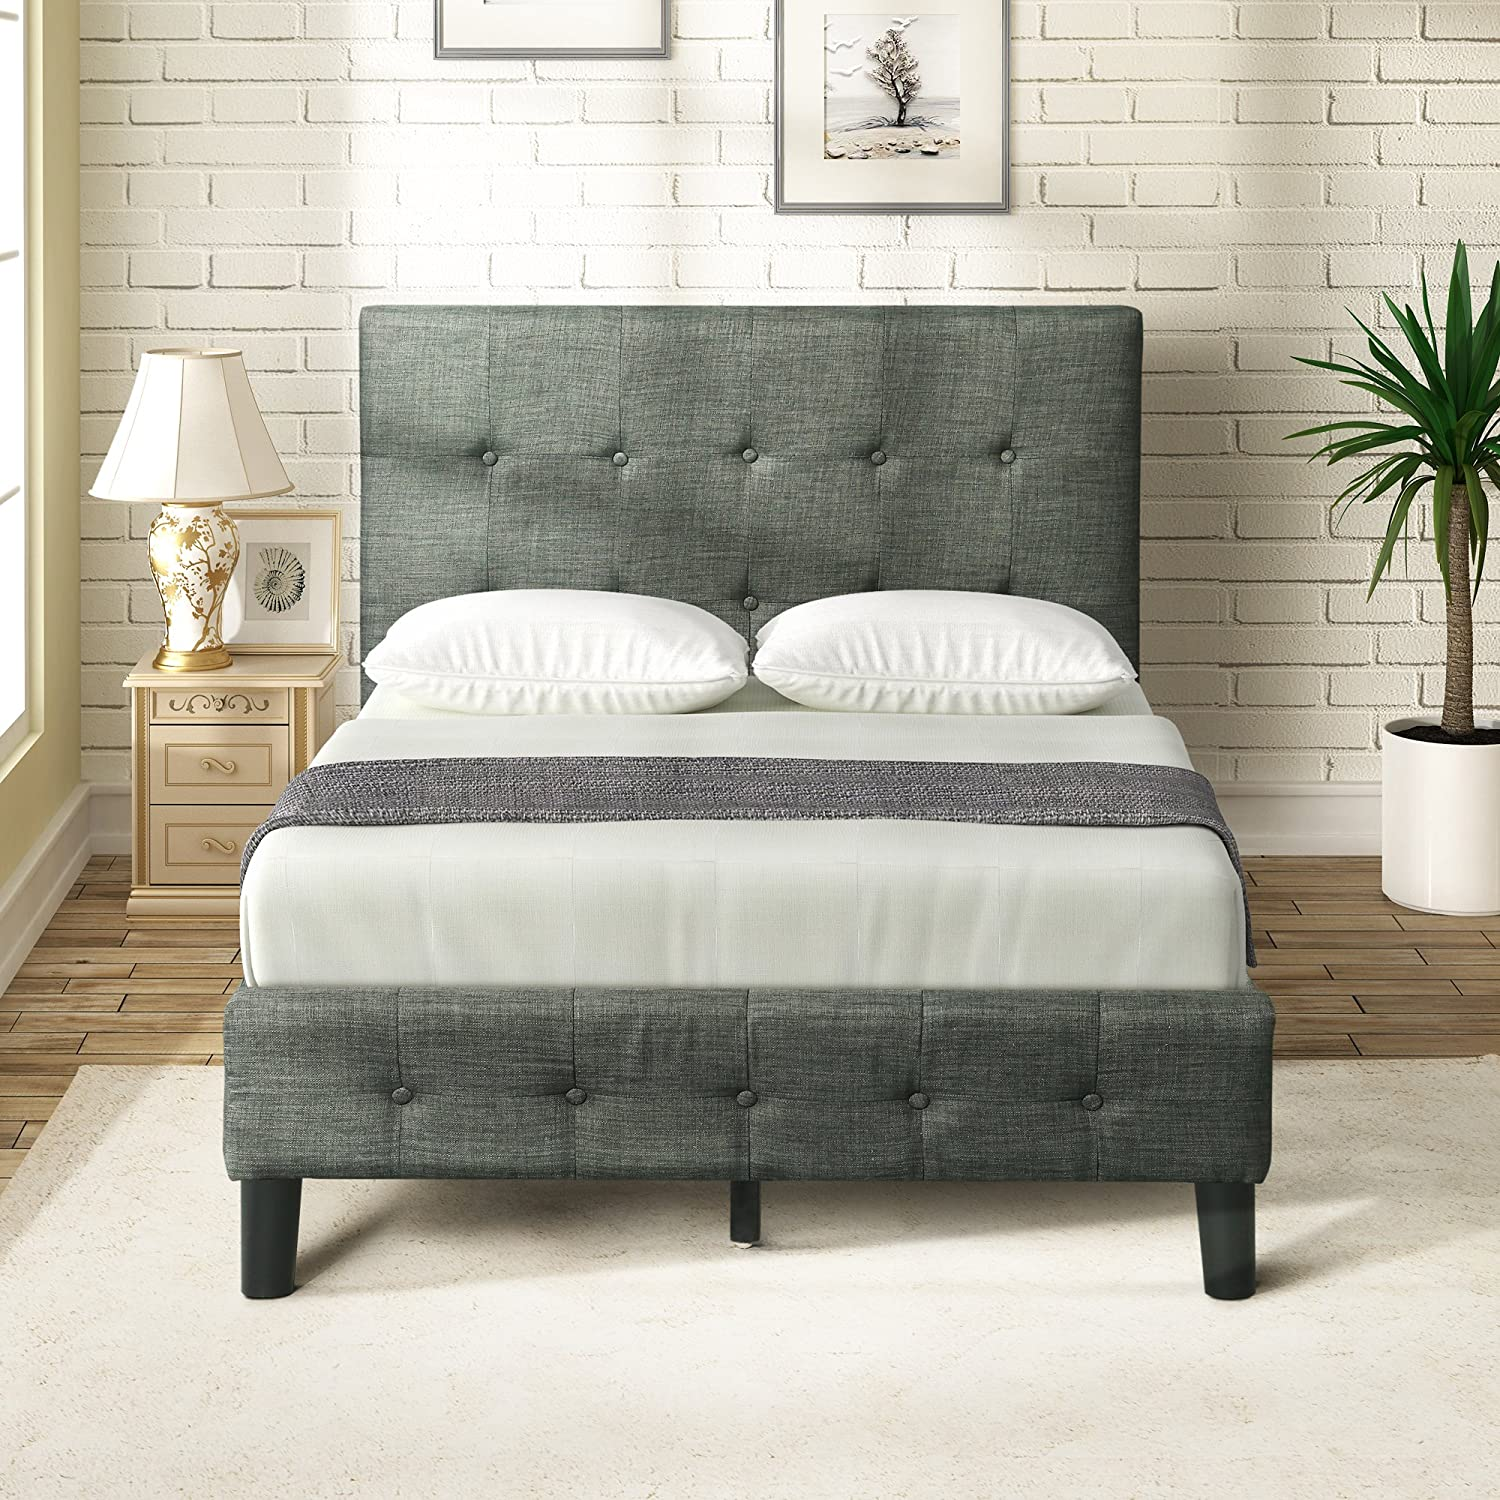 Harper Bright Designs Upholstered Platform Bed with Wooden Slat Support and Tufted Headboard and Footboard Twin